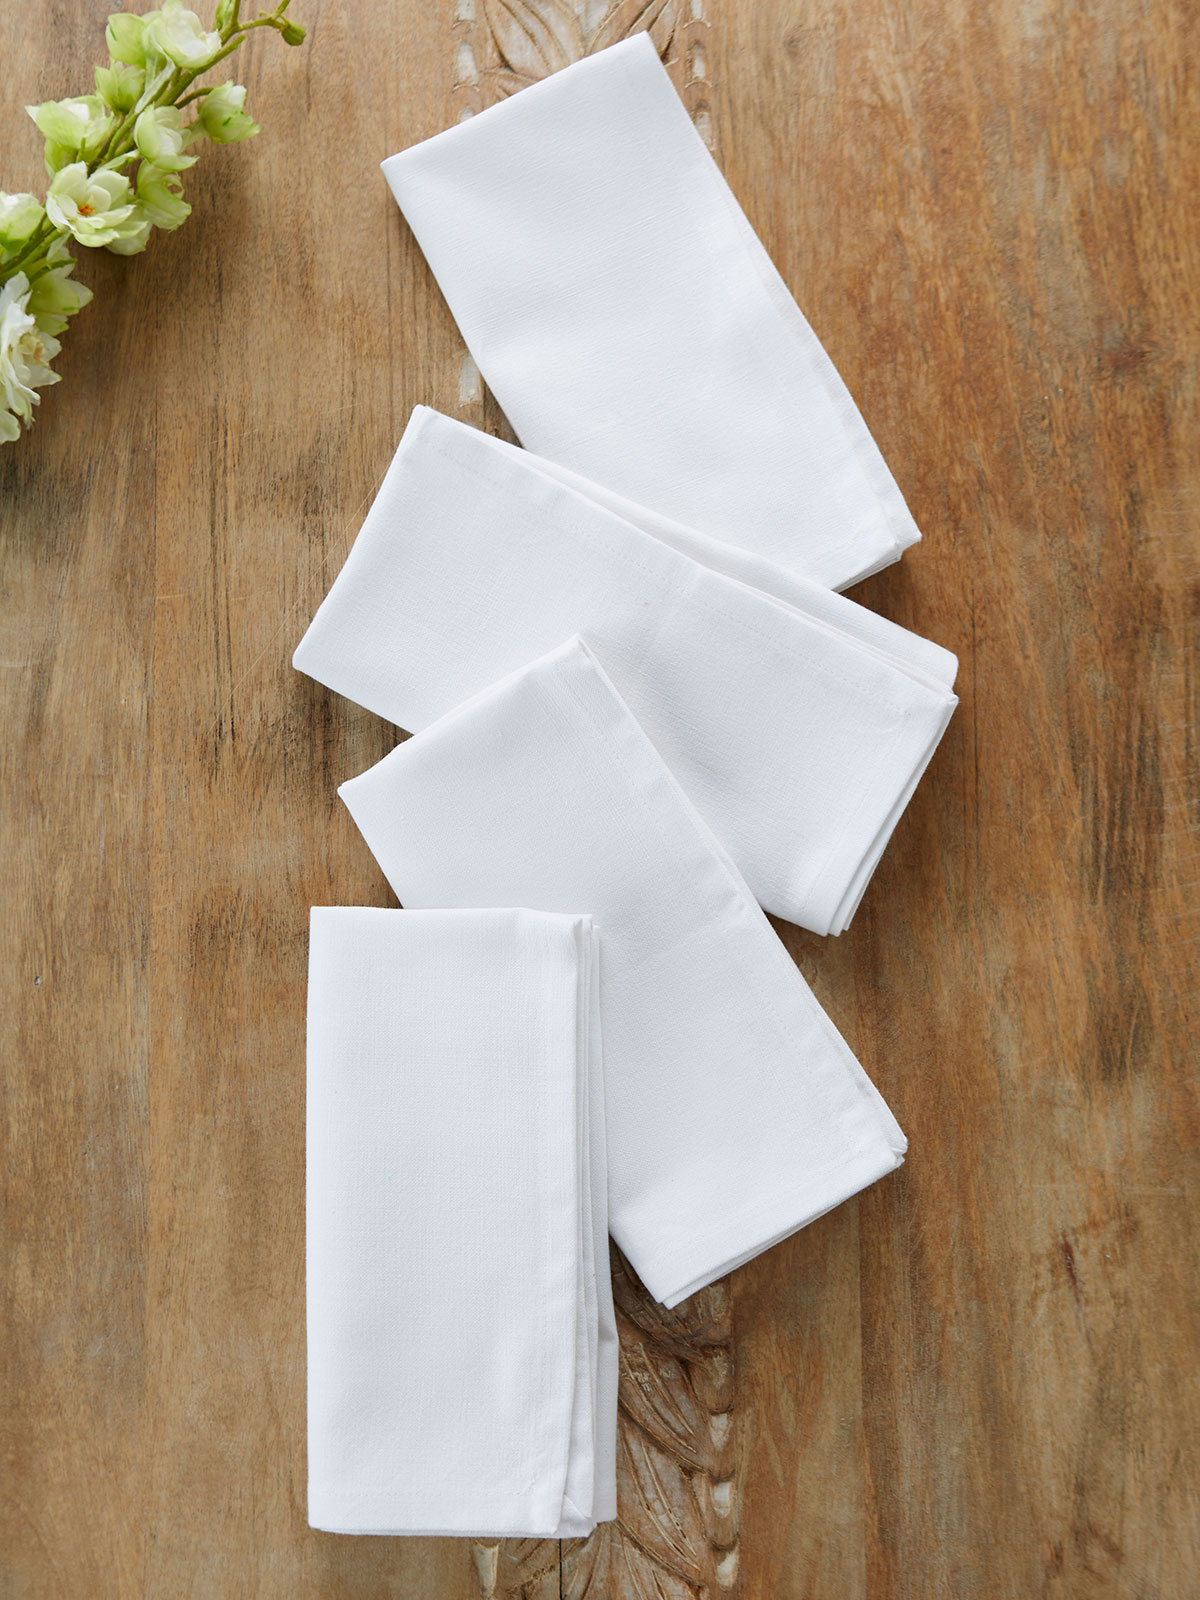 Hemmed Essential Napkin Set of 4 - White